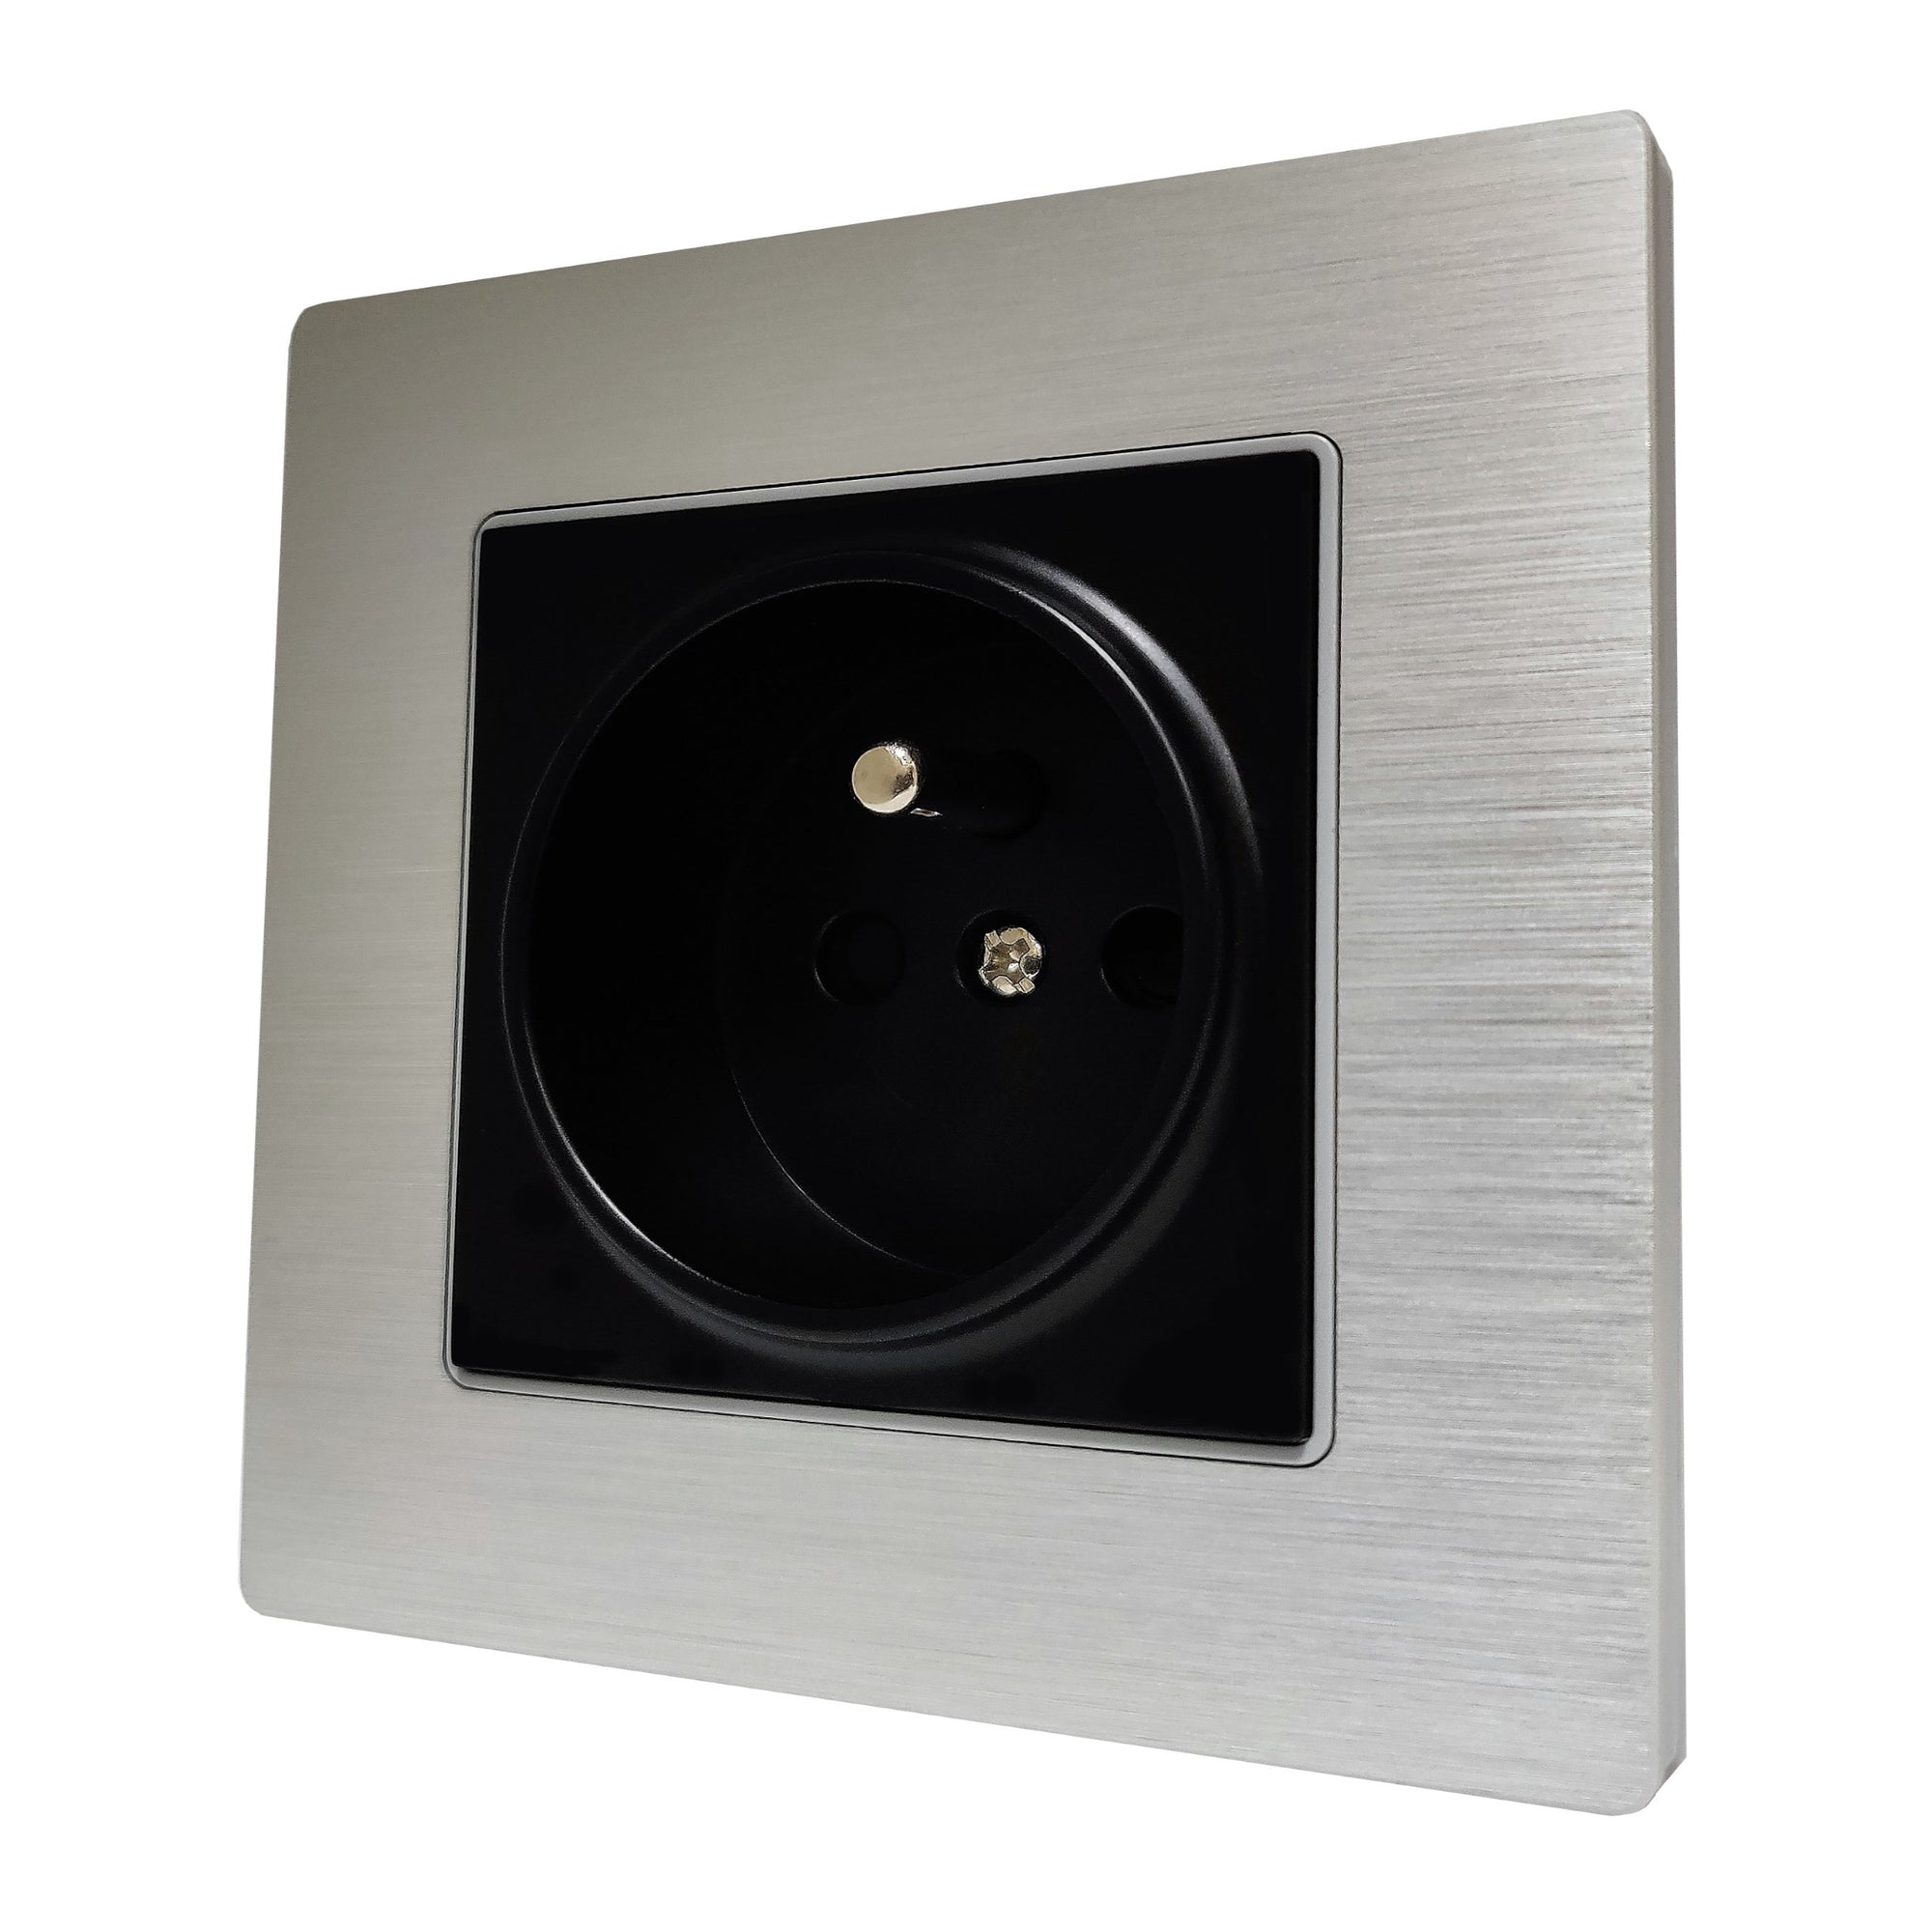 Single French EU 16A 2-Pin AC Wall Power Socket in Silver Brushed Alum Frame & Black Centre